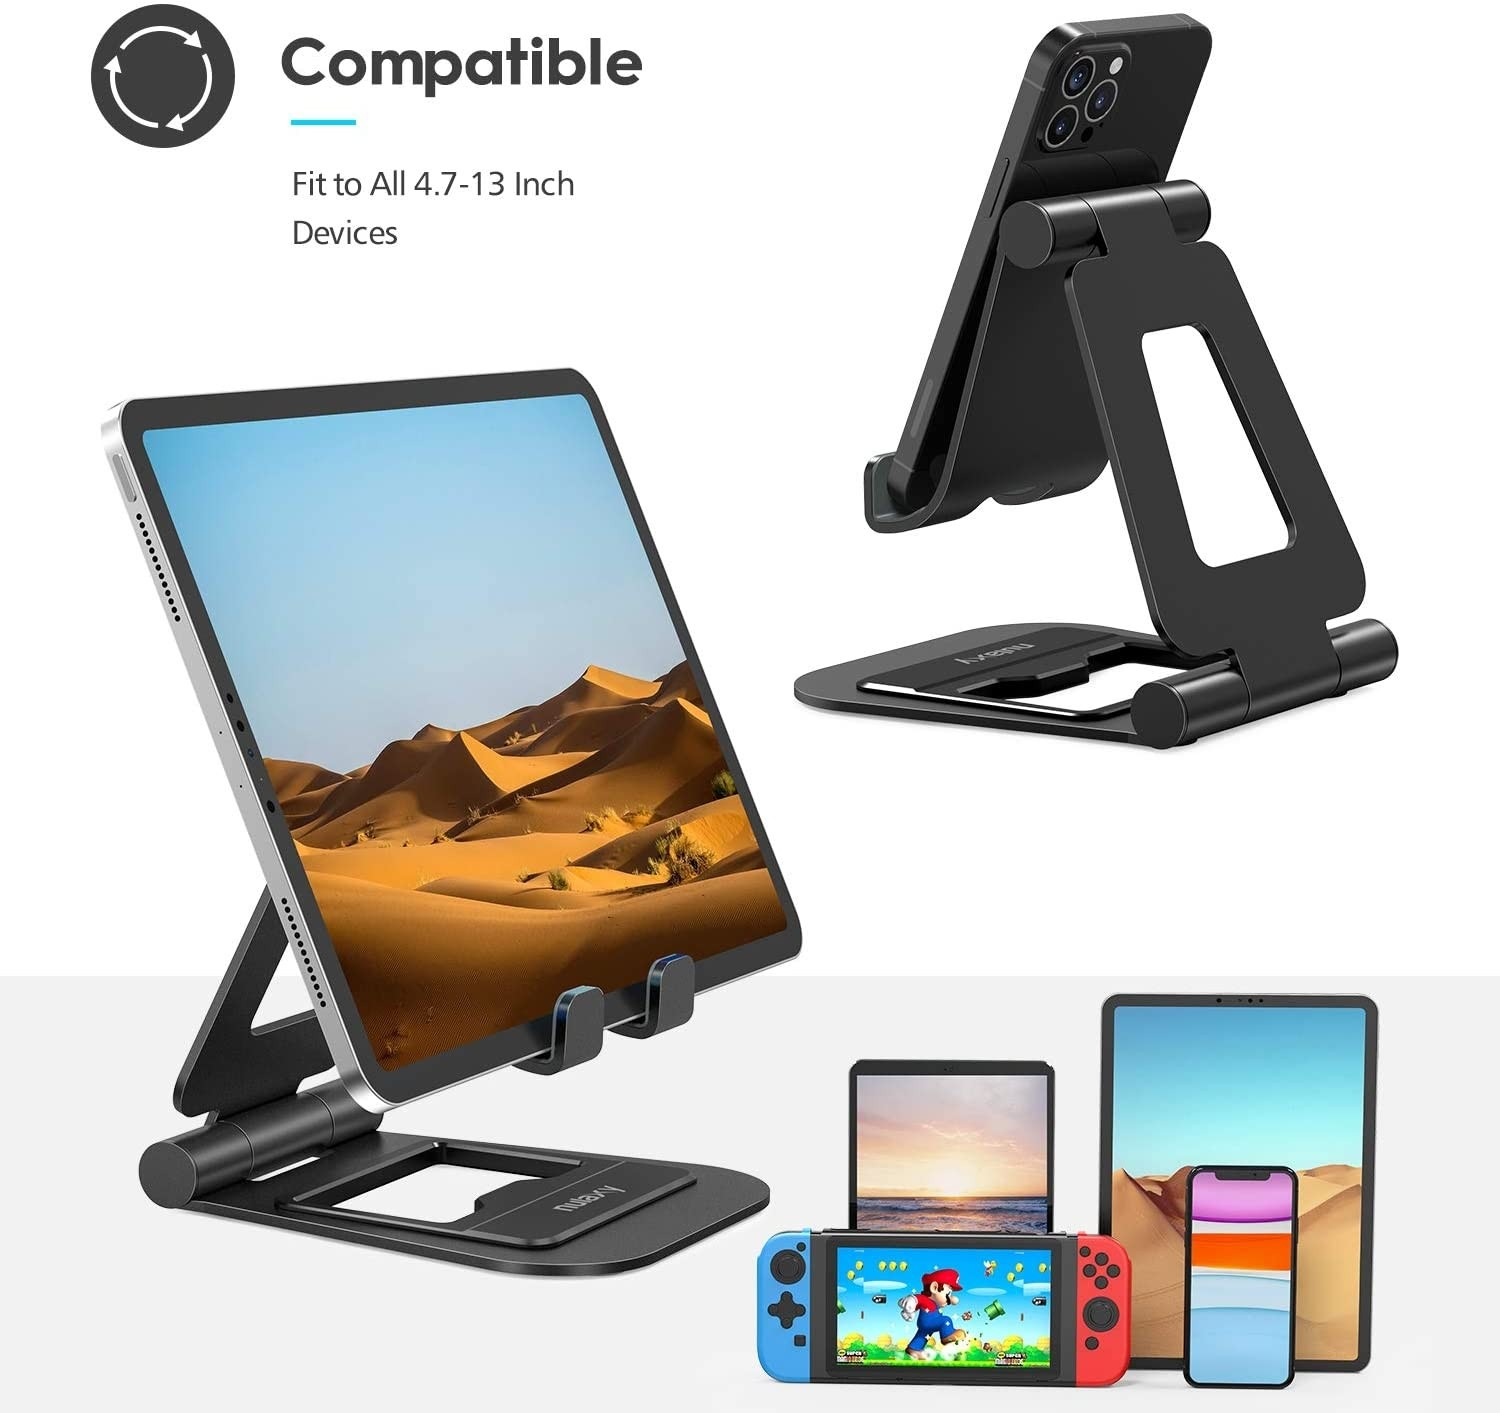 Nulaxy A5 Tablet Stand, Fully Foldable Tablet Holder Cell Phone Stand Compatible with All Tablets and Mobile Phones - Heavy Duty Black, B08731BKPL